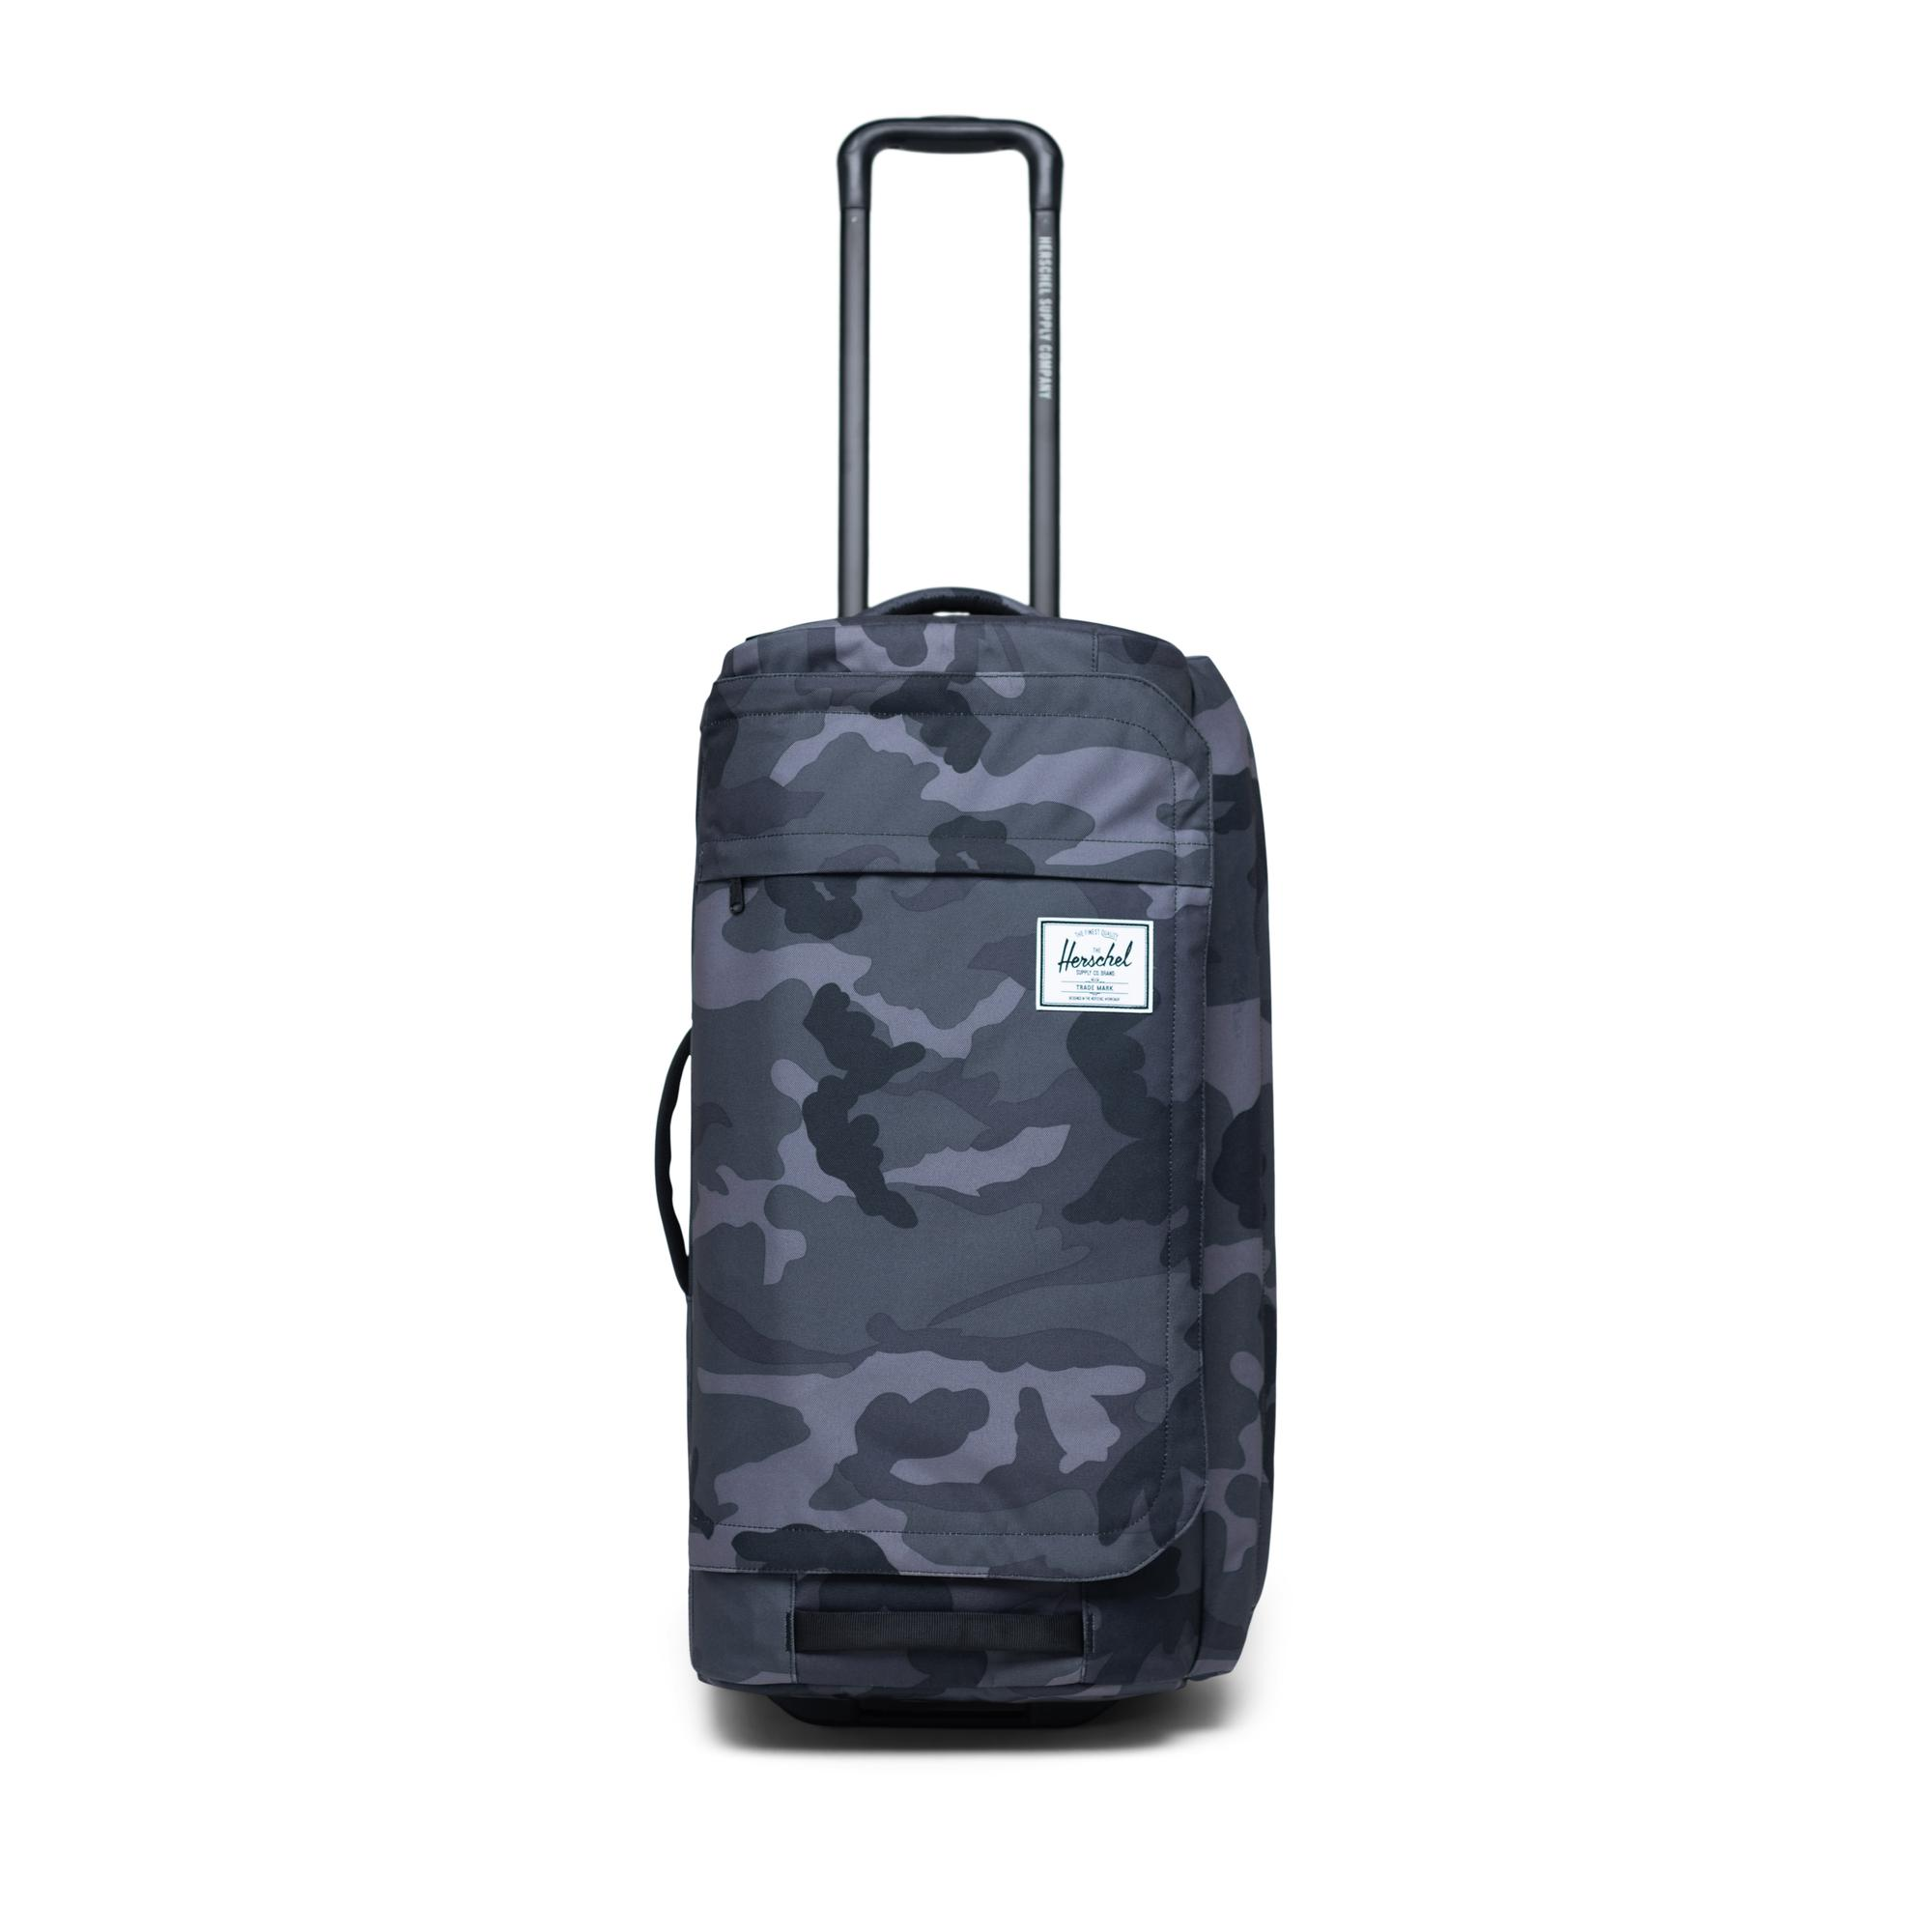 Outfitter Wheelie Luggage | 70 L by Herschel Supply Co.